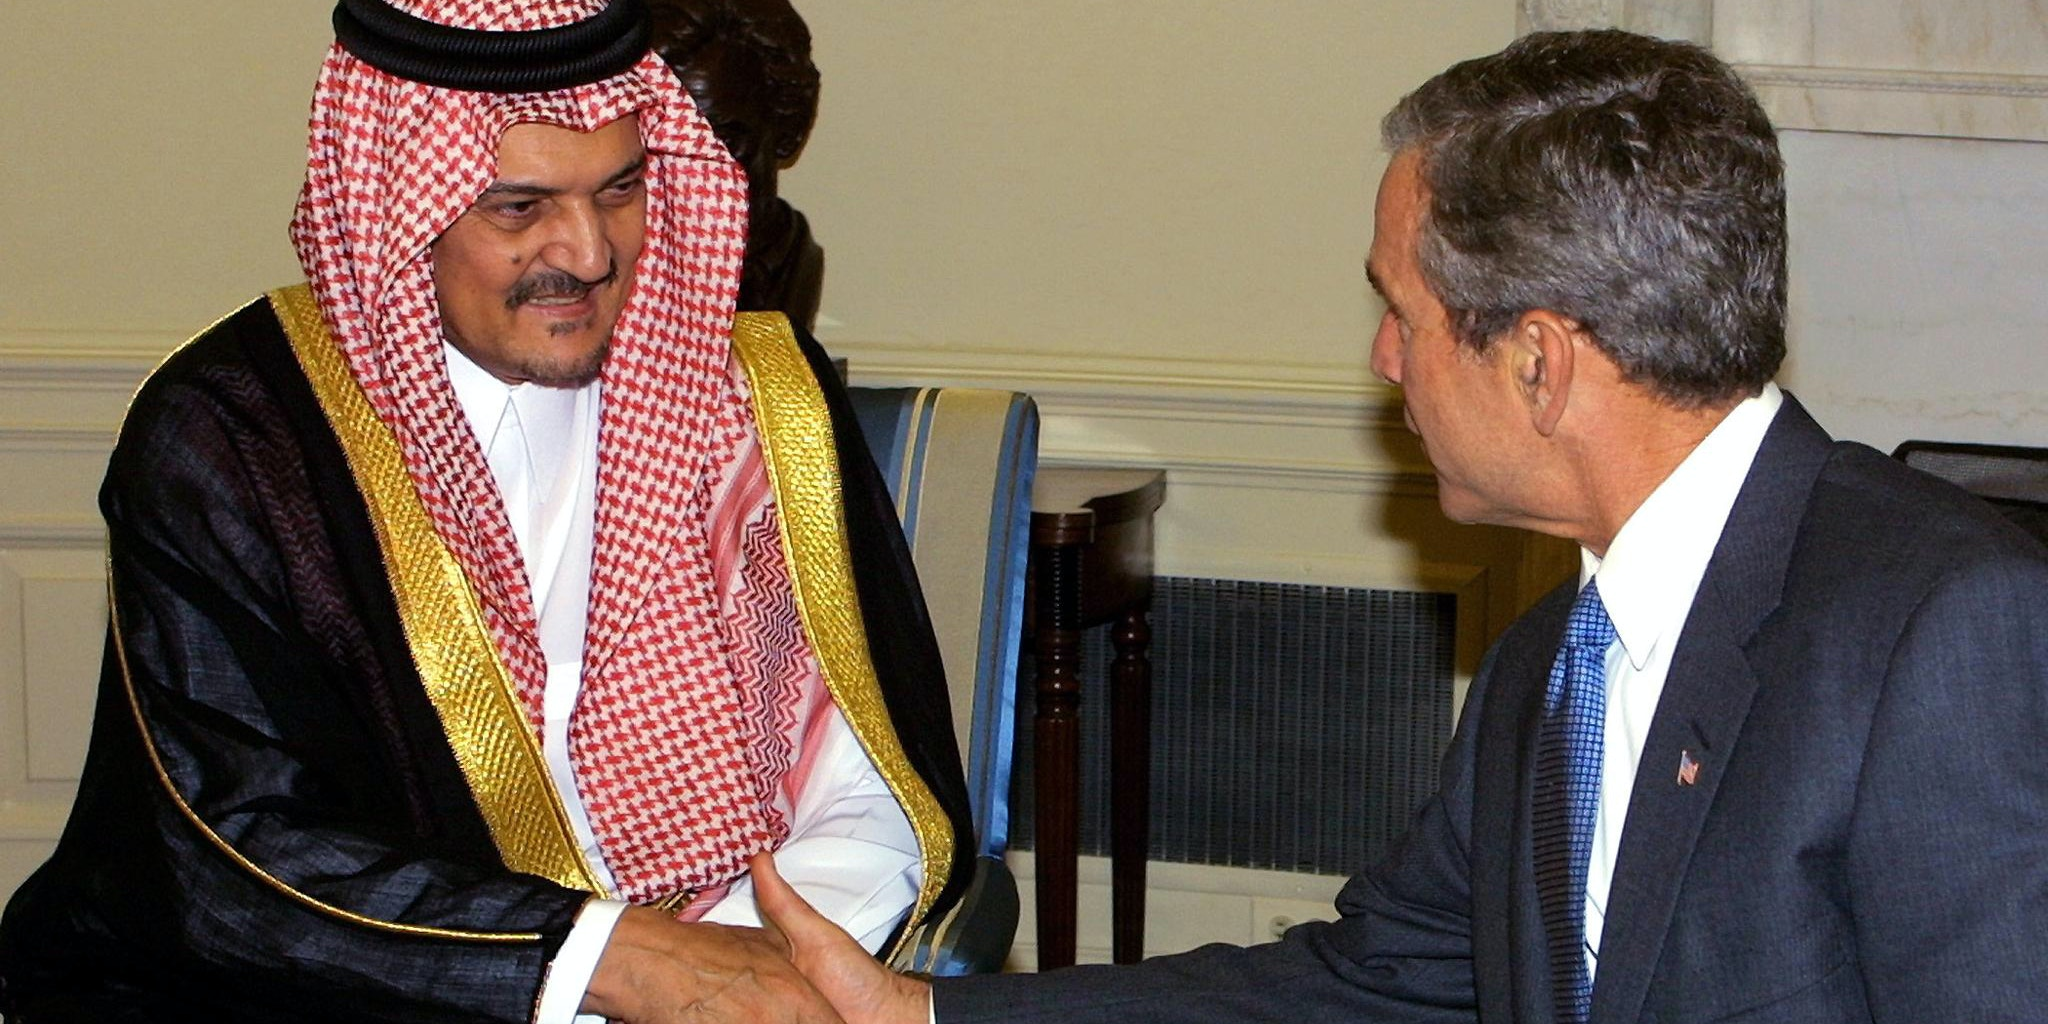 9/11 and the Saudi ConnectionFilters SVG